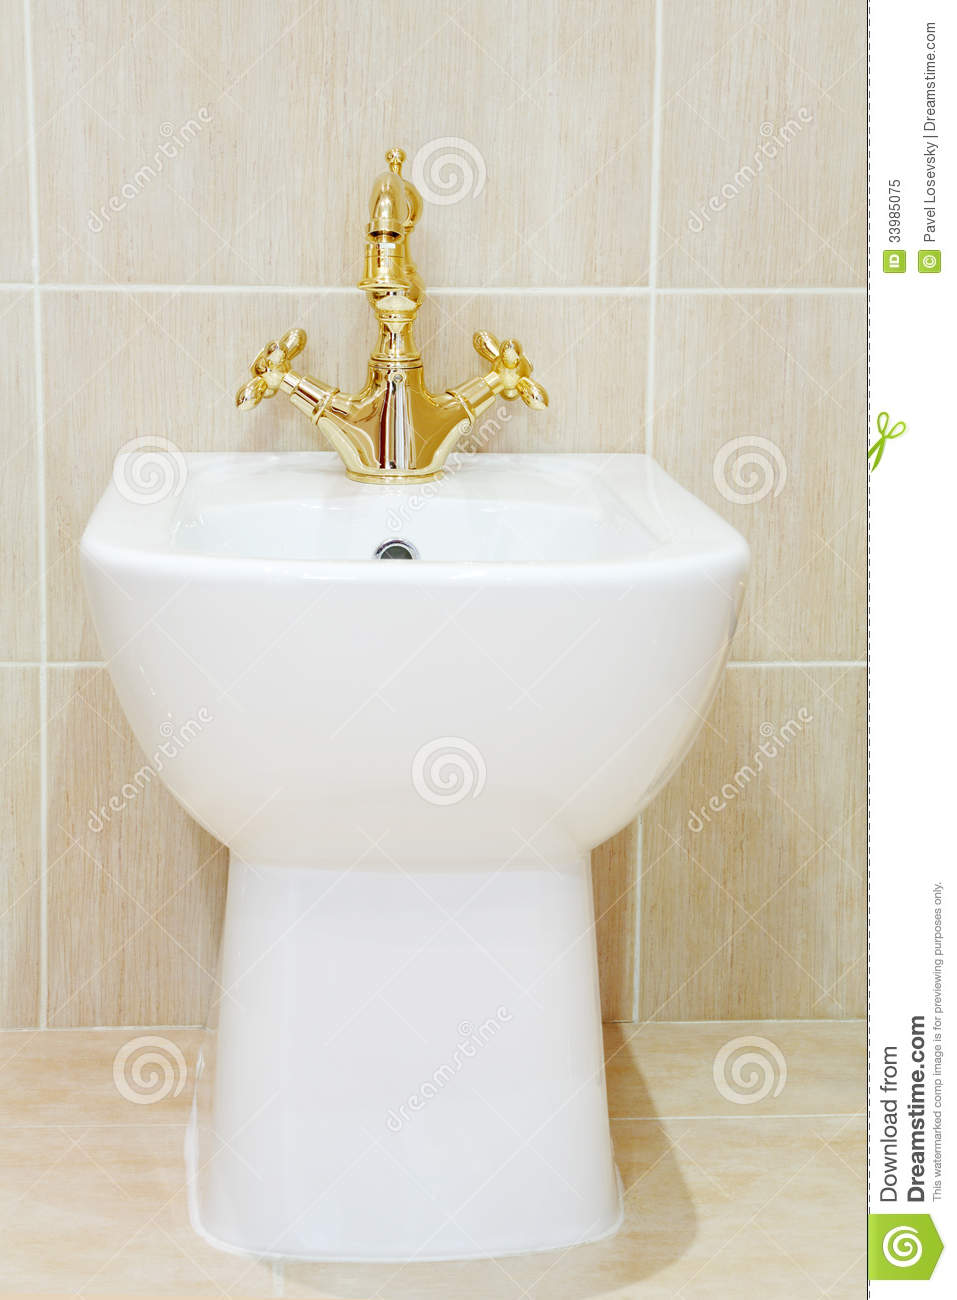 Clean And White Bidet With Gold plated Faucet Royalty Free